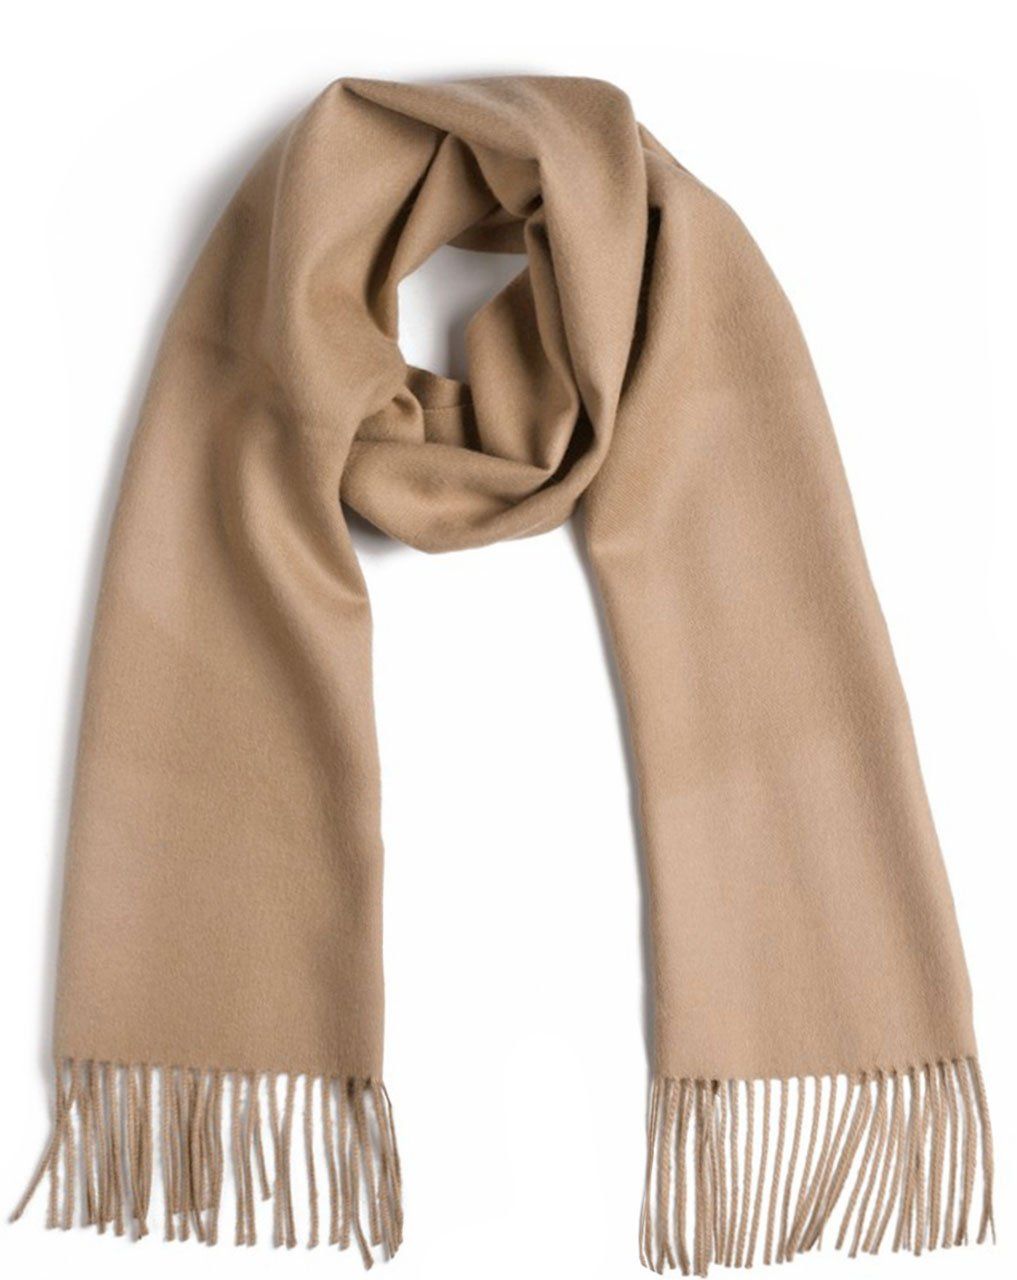 Luxurious 100% Premium Baby Alpaca Scarf - Ultimate Softness - for Men and Women (Fawn)